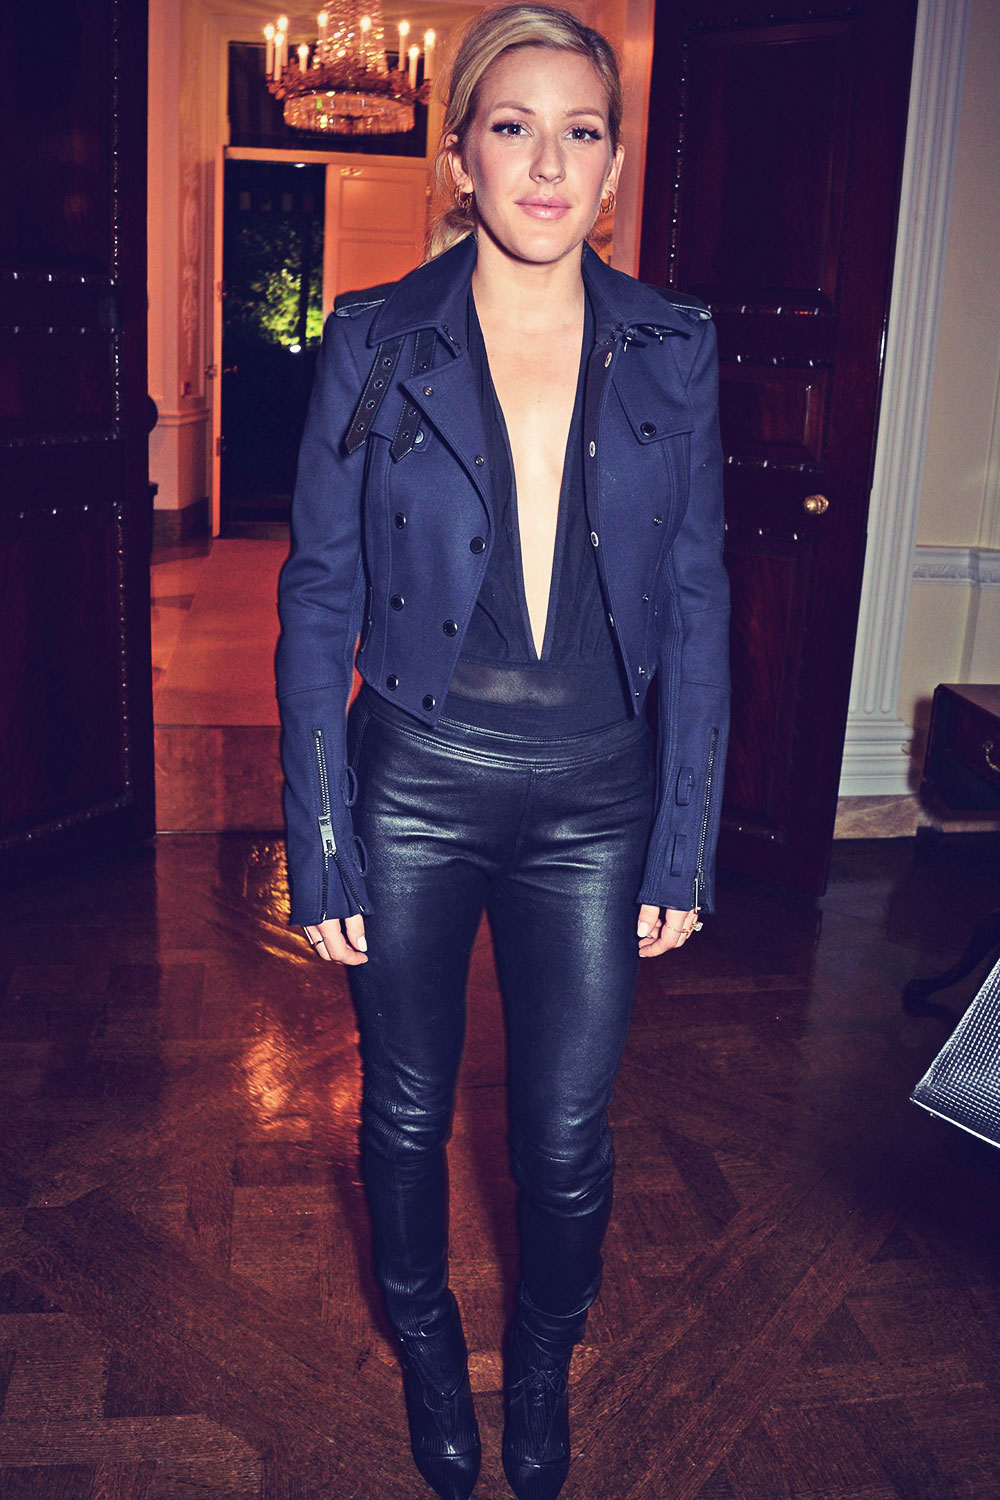 Ellie Goulding attends Vogue & J Crew Party